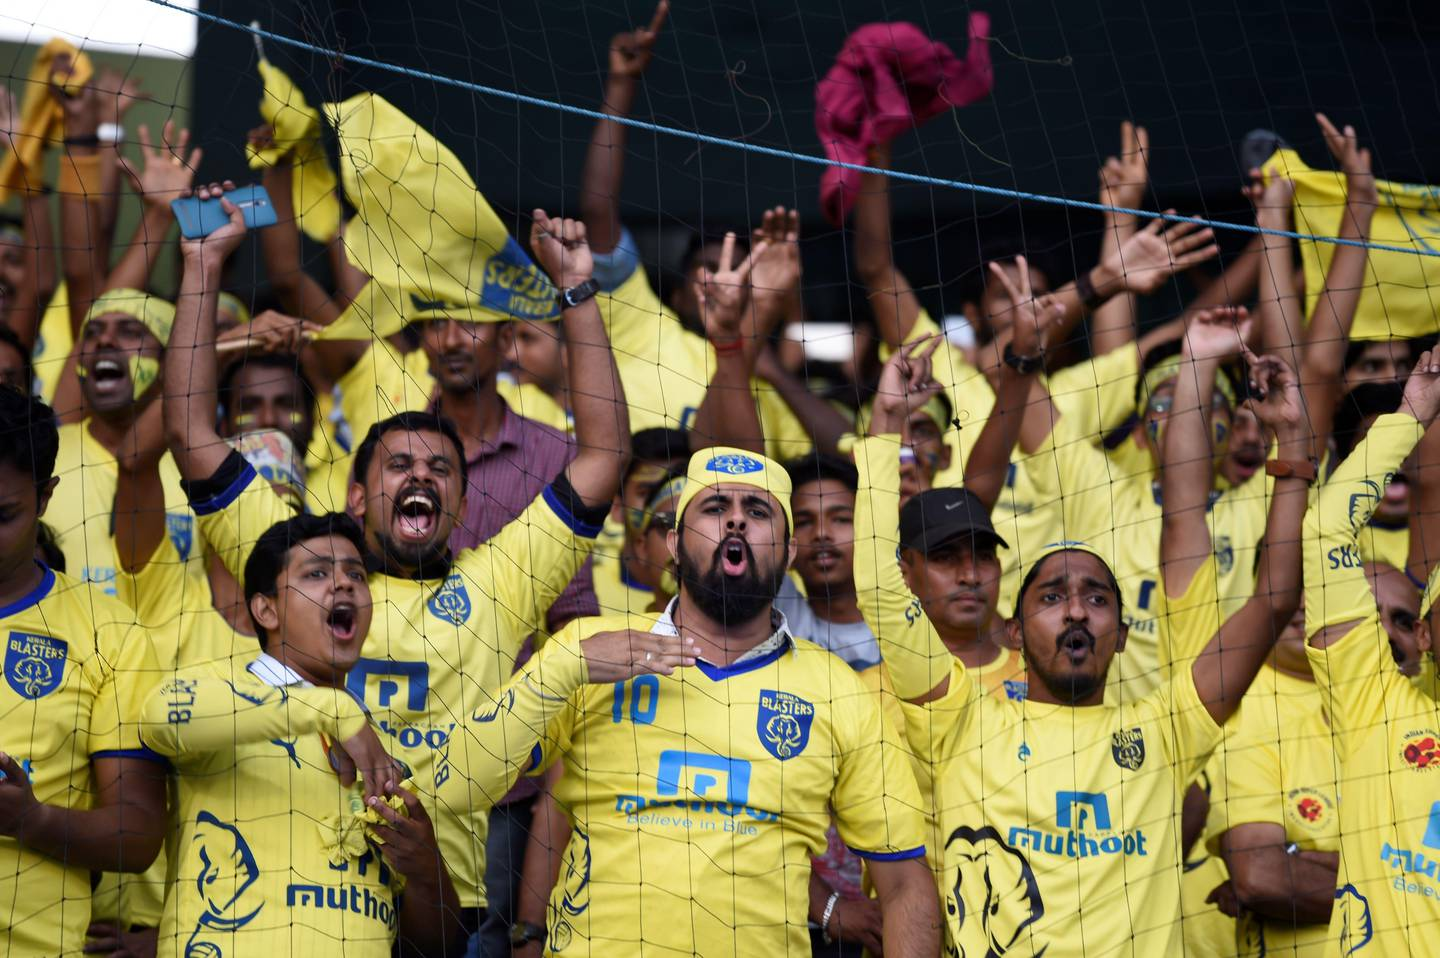 (FILES) This file photo taken on December 18, 2016 shows Kerala Blasters FC supporters cheering before the final Indian Super League (ISL) football match Between Kerala Blasters FC and Atletico de Kolkata at the Jawahar Lal Nehru Stadium in Kochi. The Indian Super League has slashed the number of high-earning foreign stars for its new season starting Friday but foreign coaches, including ex-England heroes Teddy Sheringham and Steve Coppell, will be in charge of every team. / AFP PHOTO / SAJJAD HUSSAIN